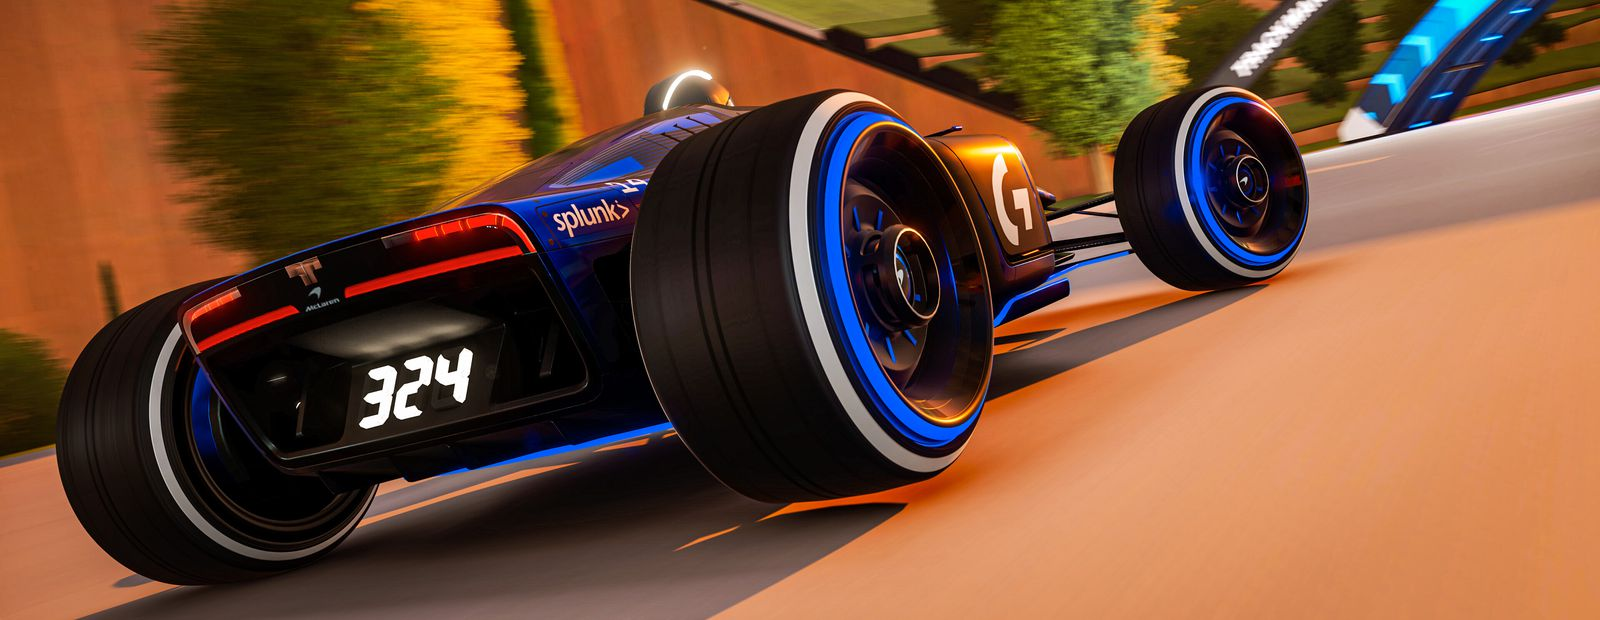 McLaren Shadow to compete in Trackmania